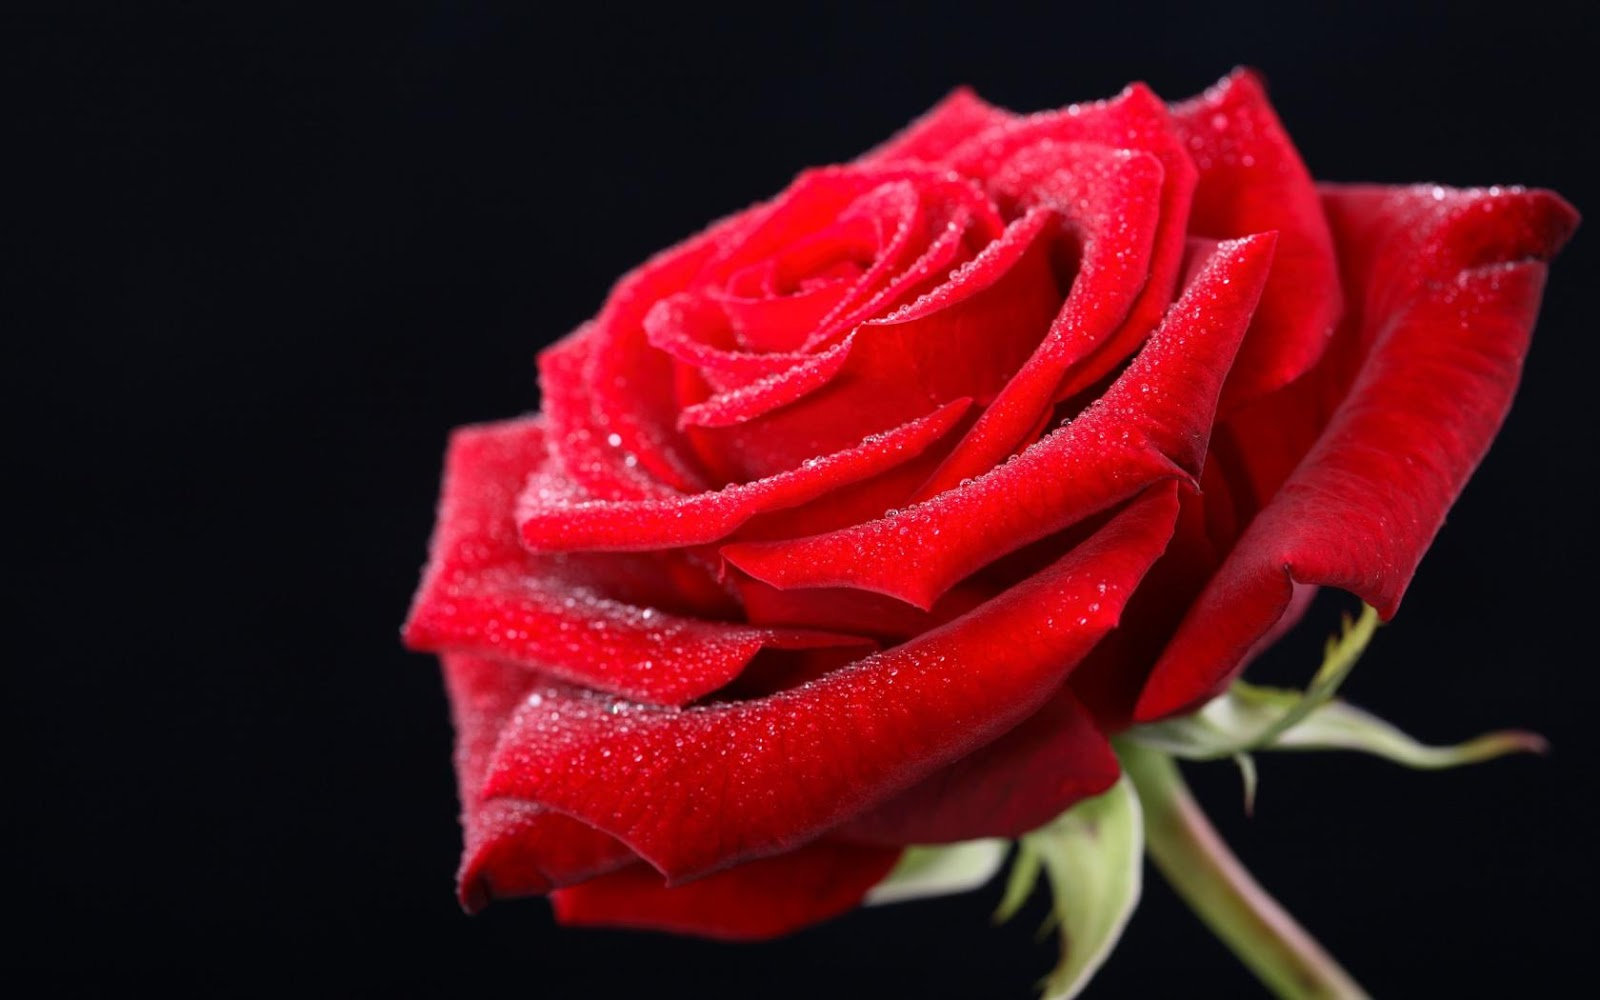 happy rose day images, pictures & wallpapers in hd - dontgetserious